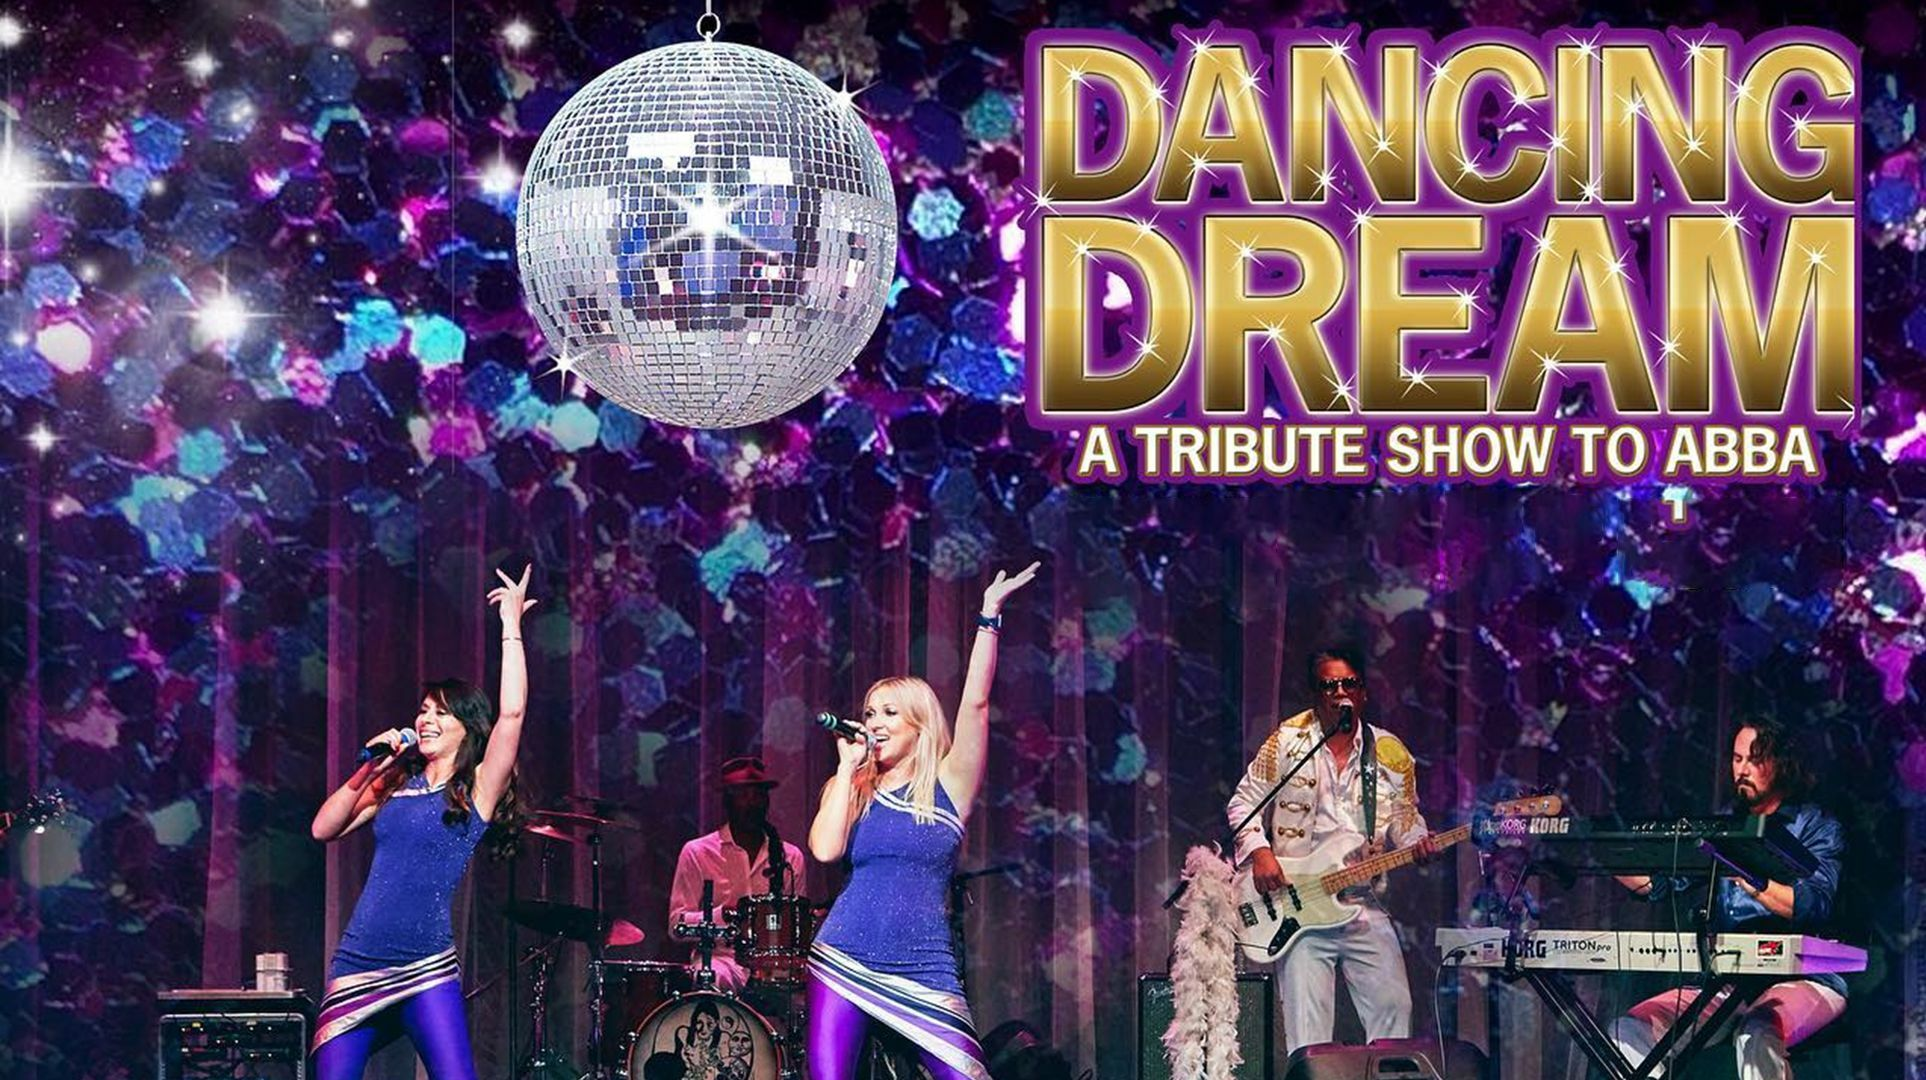 ABBA Tribute with Dancing Dream